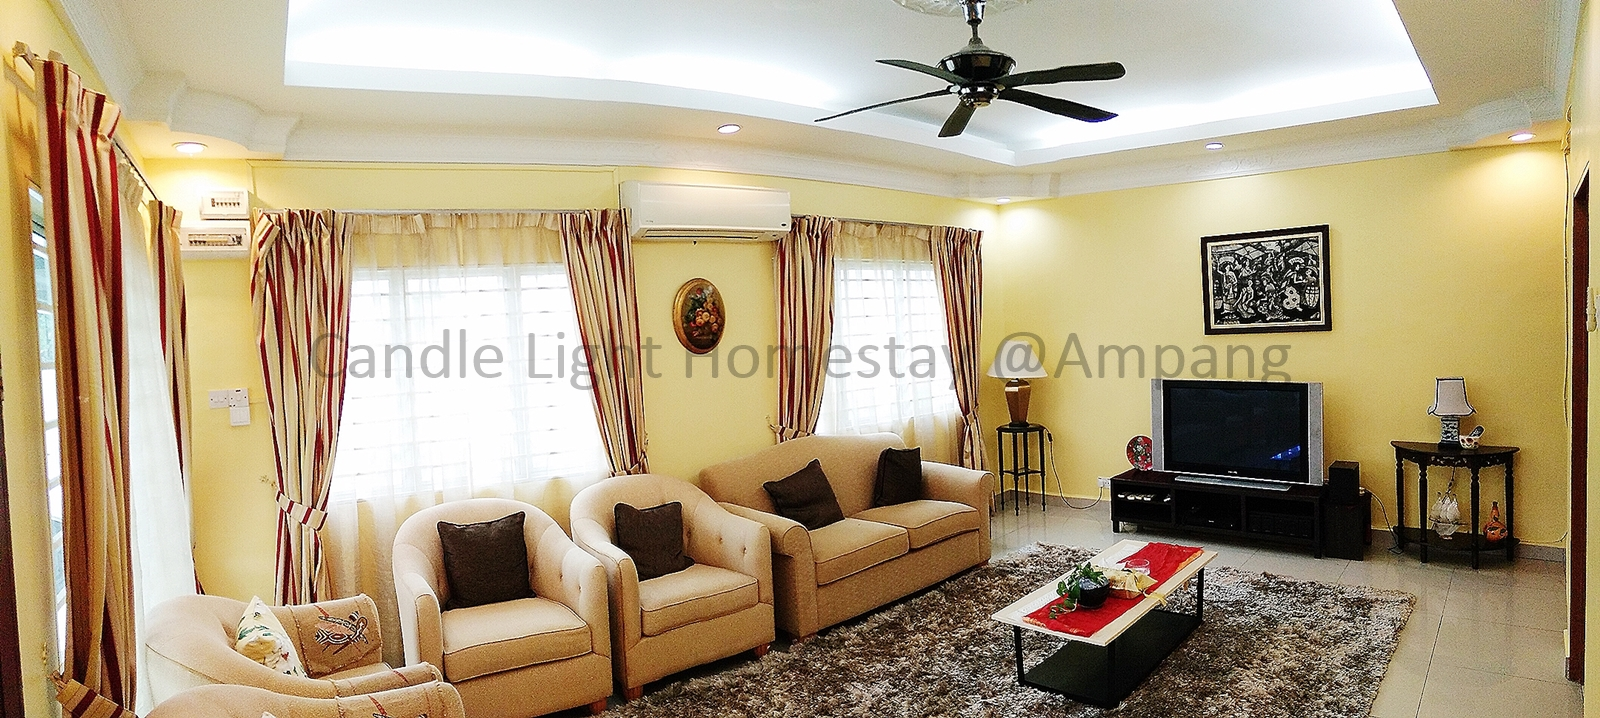 Living Room - Candle Light Home Stay@Ampang